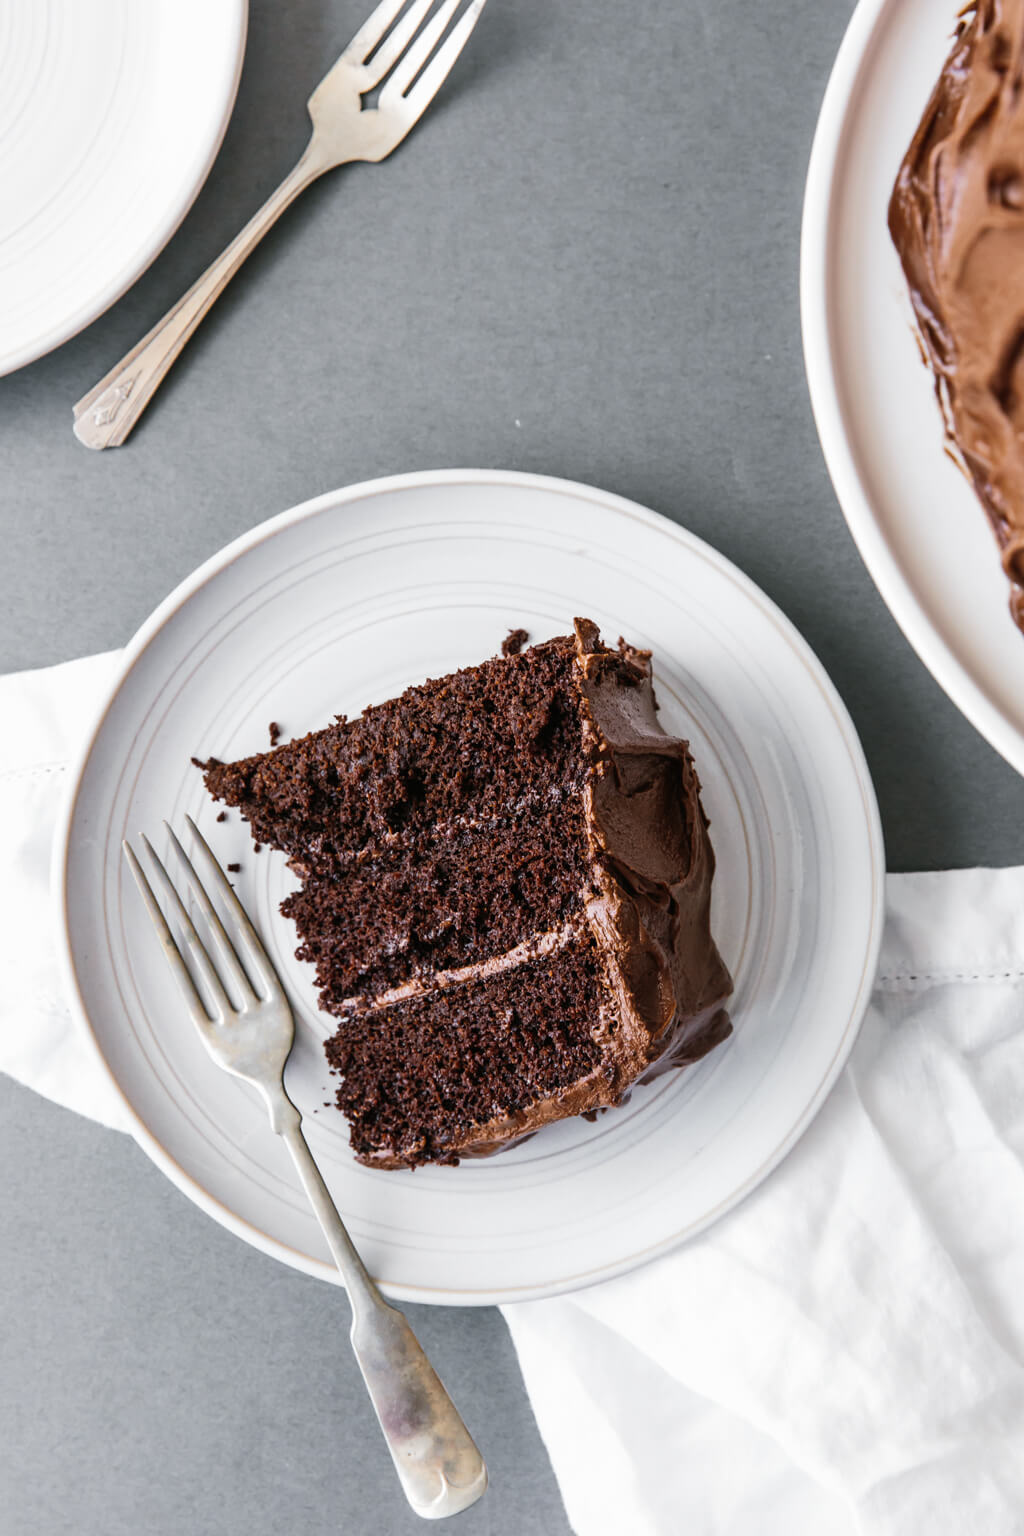 (gluten-free, grain-free, dairy-free) This paleo chocolate cake recipe is unbelievably rich, decadent and moist. It's the perfect chocolate birthday cake.